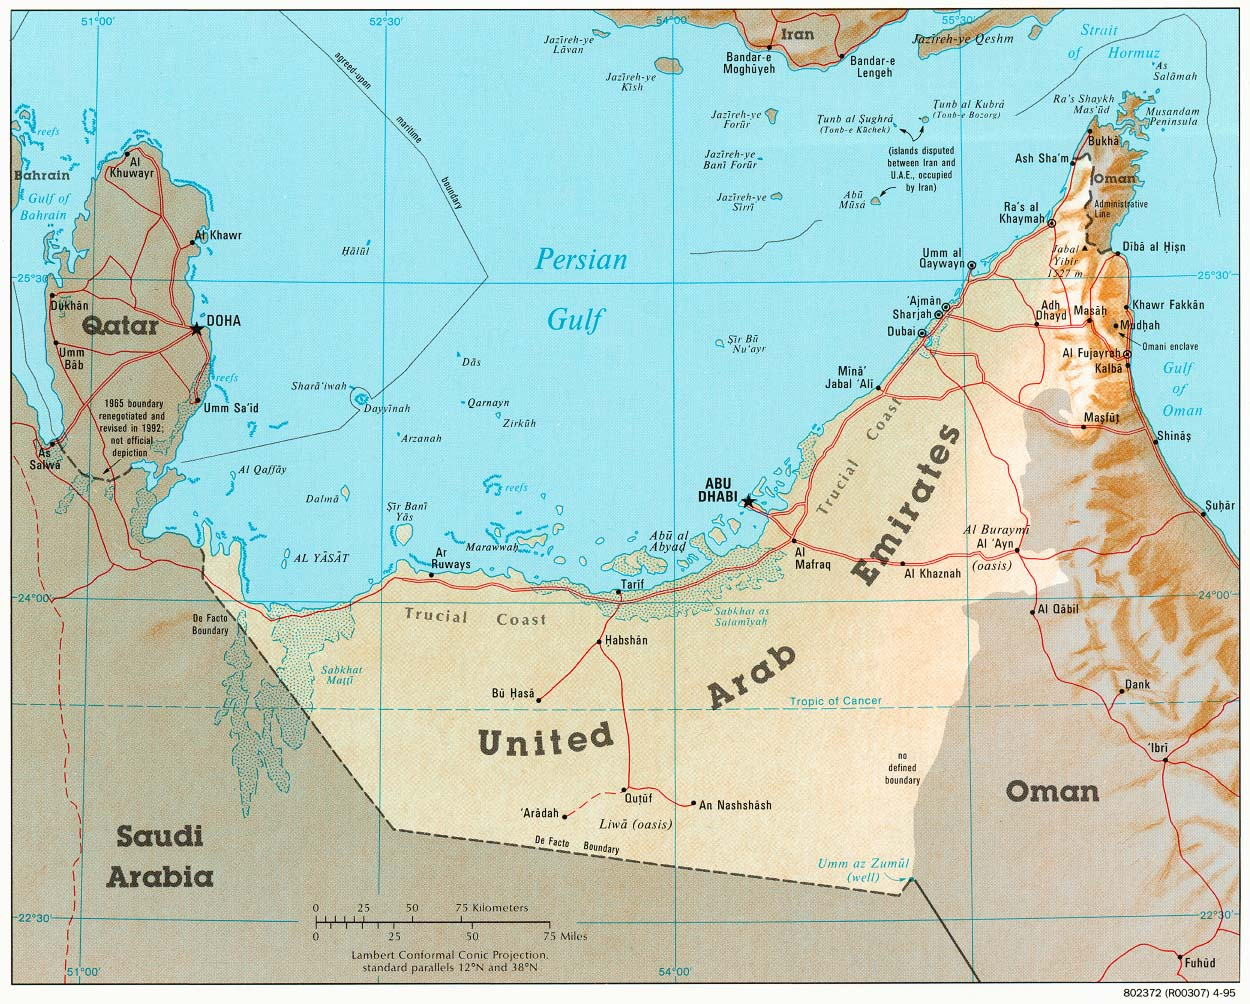 Maps Update 500320 Map of United Arab Emirates and Saudi Arabia – United Arab Emirates Google Maps